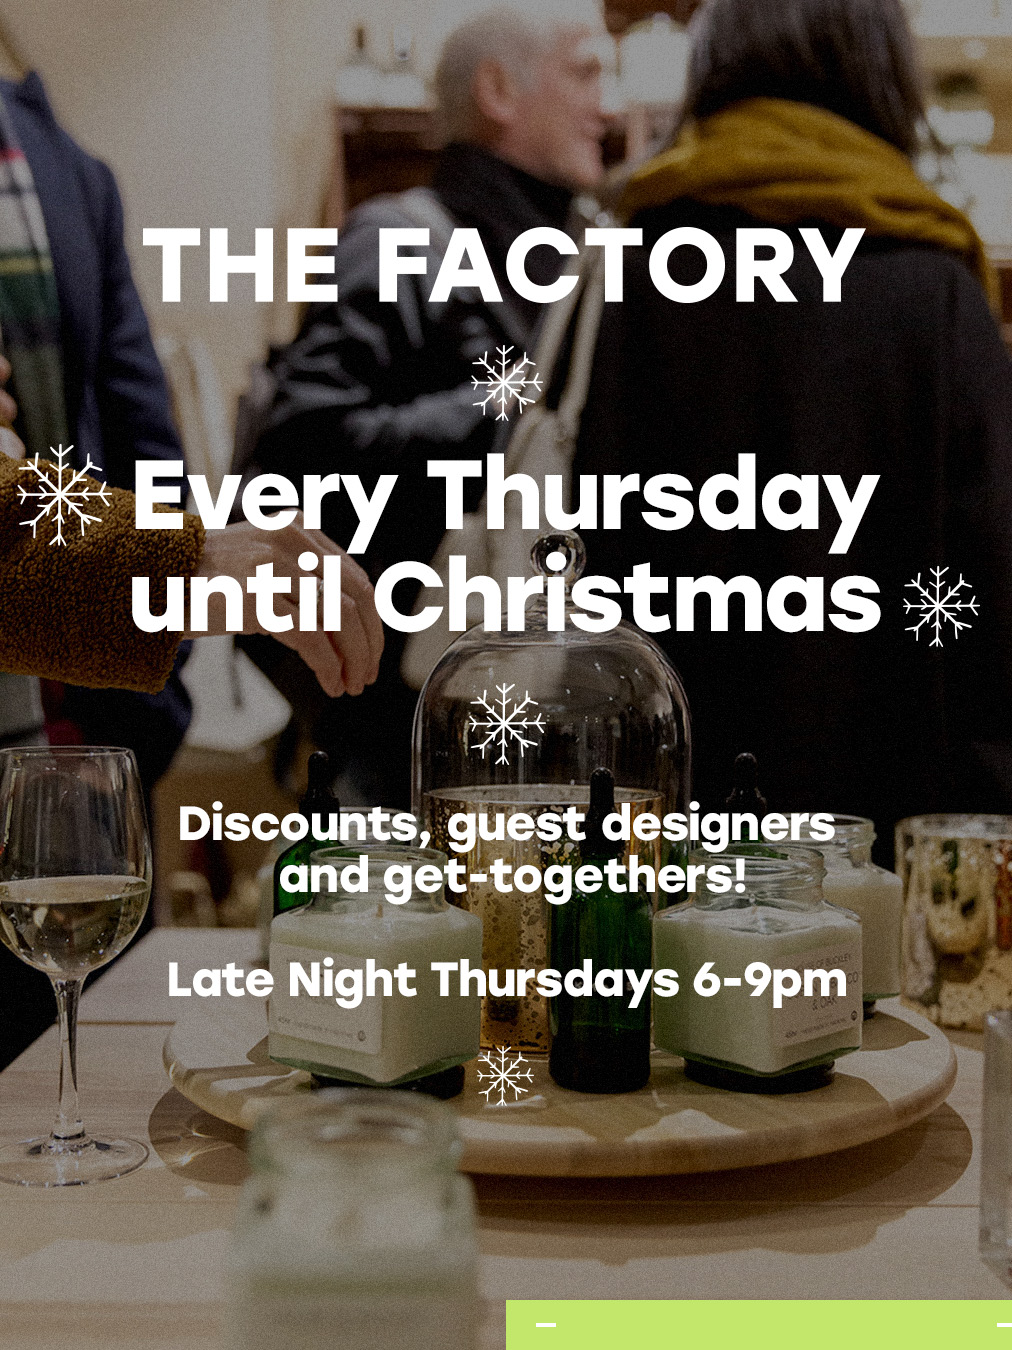 Late Night Thursdays - Christmas Shopping at The Factory